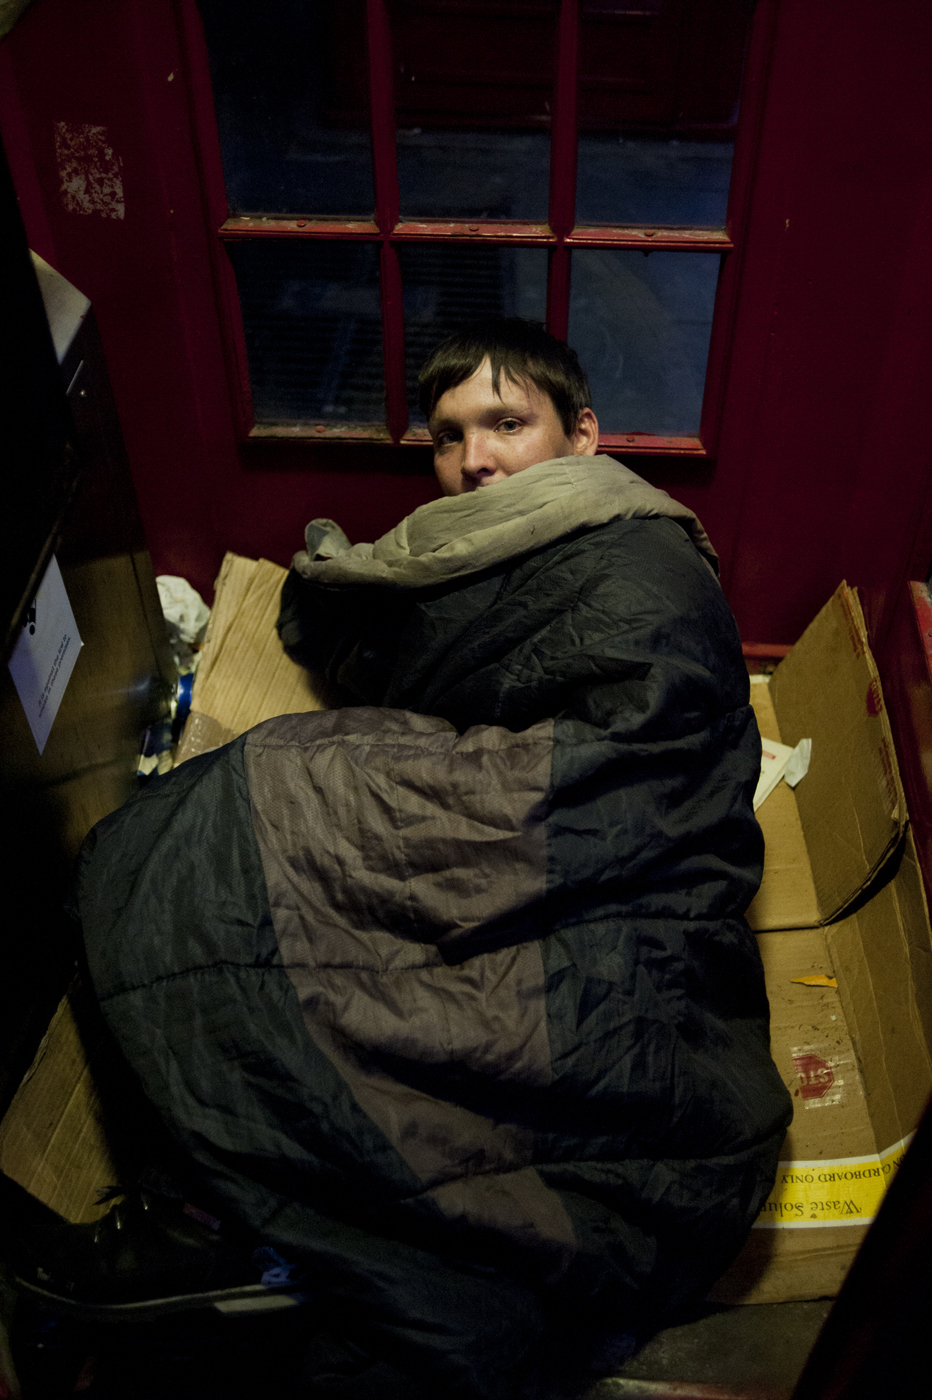 0010_15_homeless_london.jpg